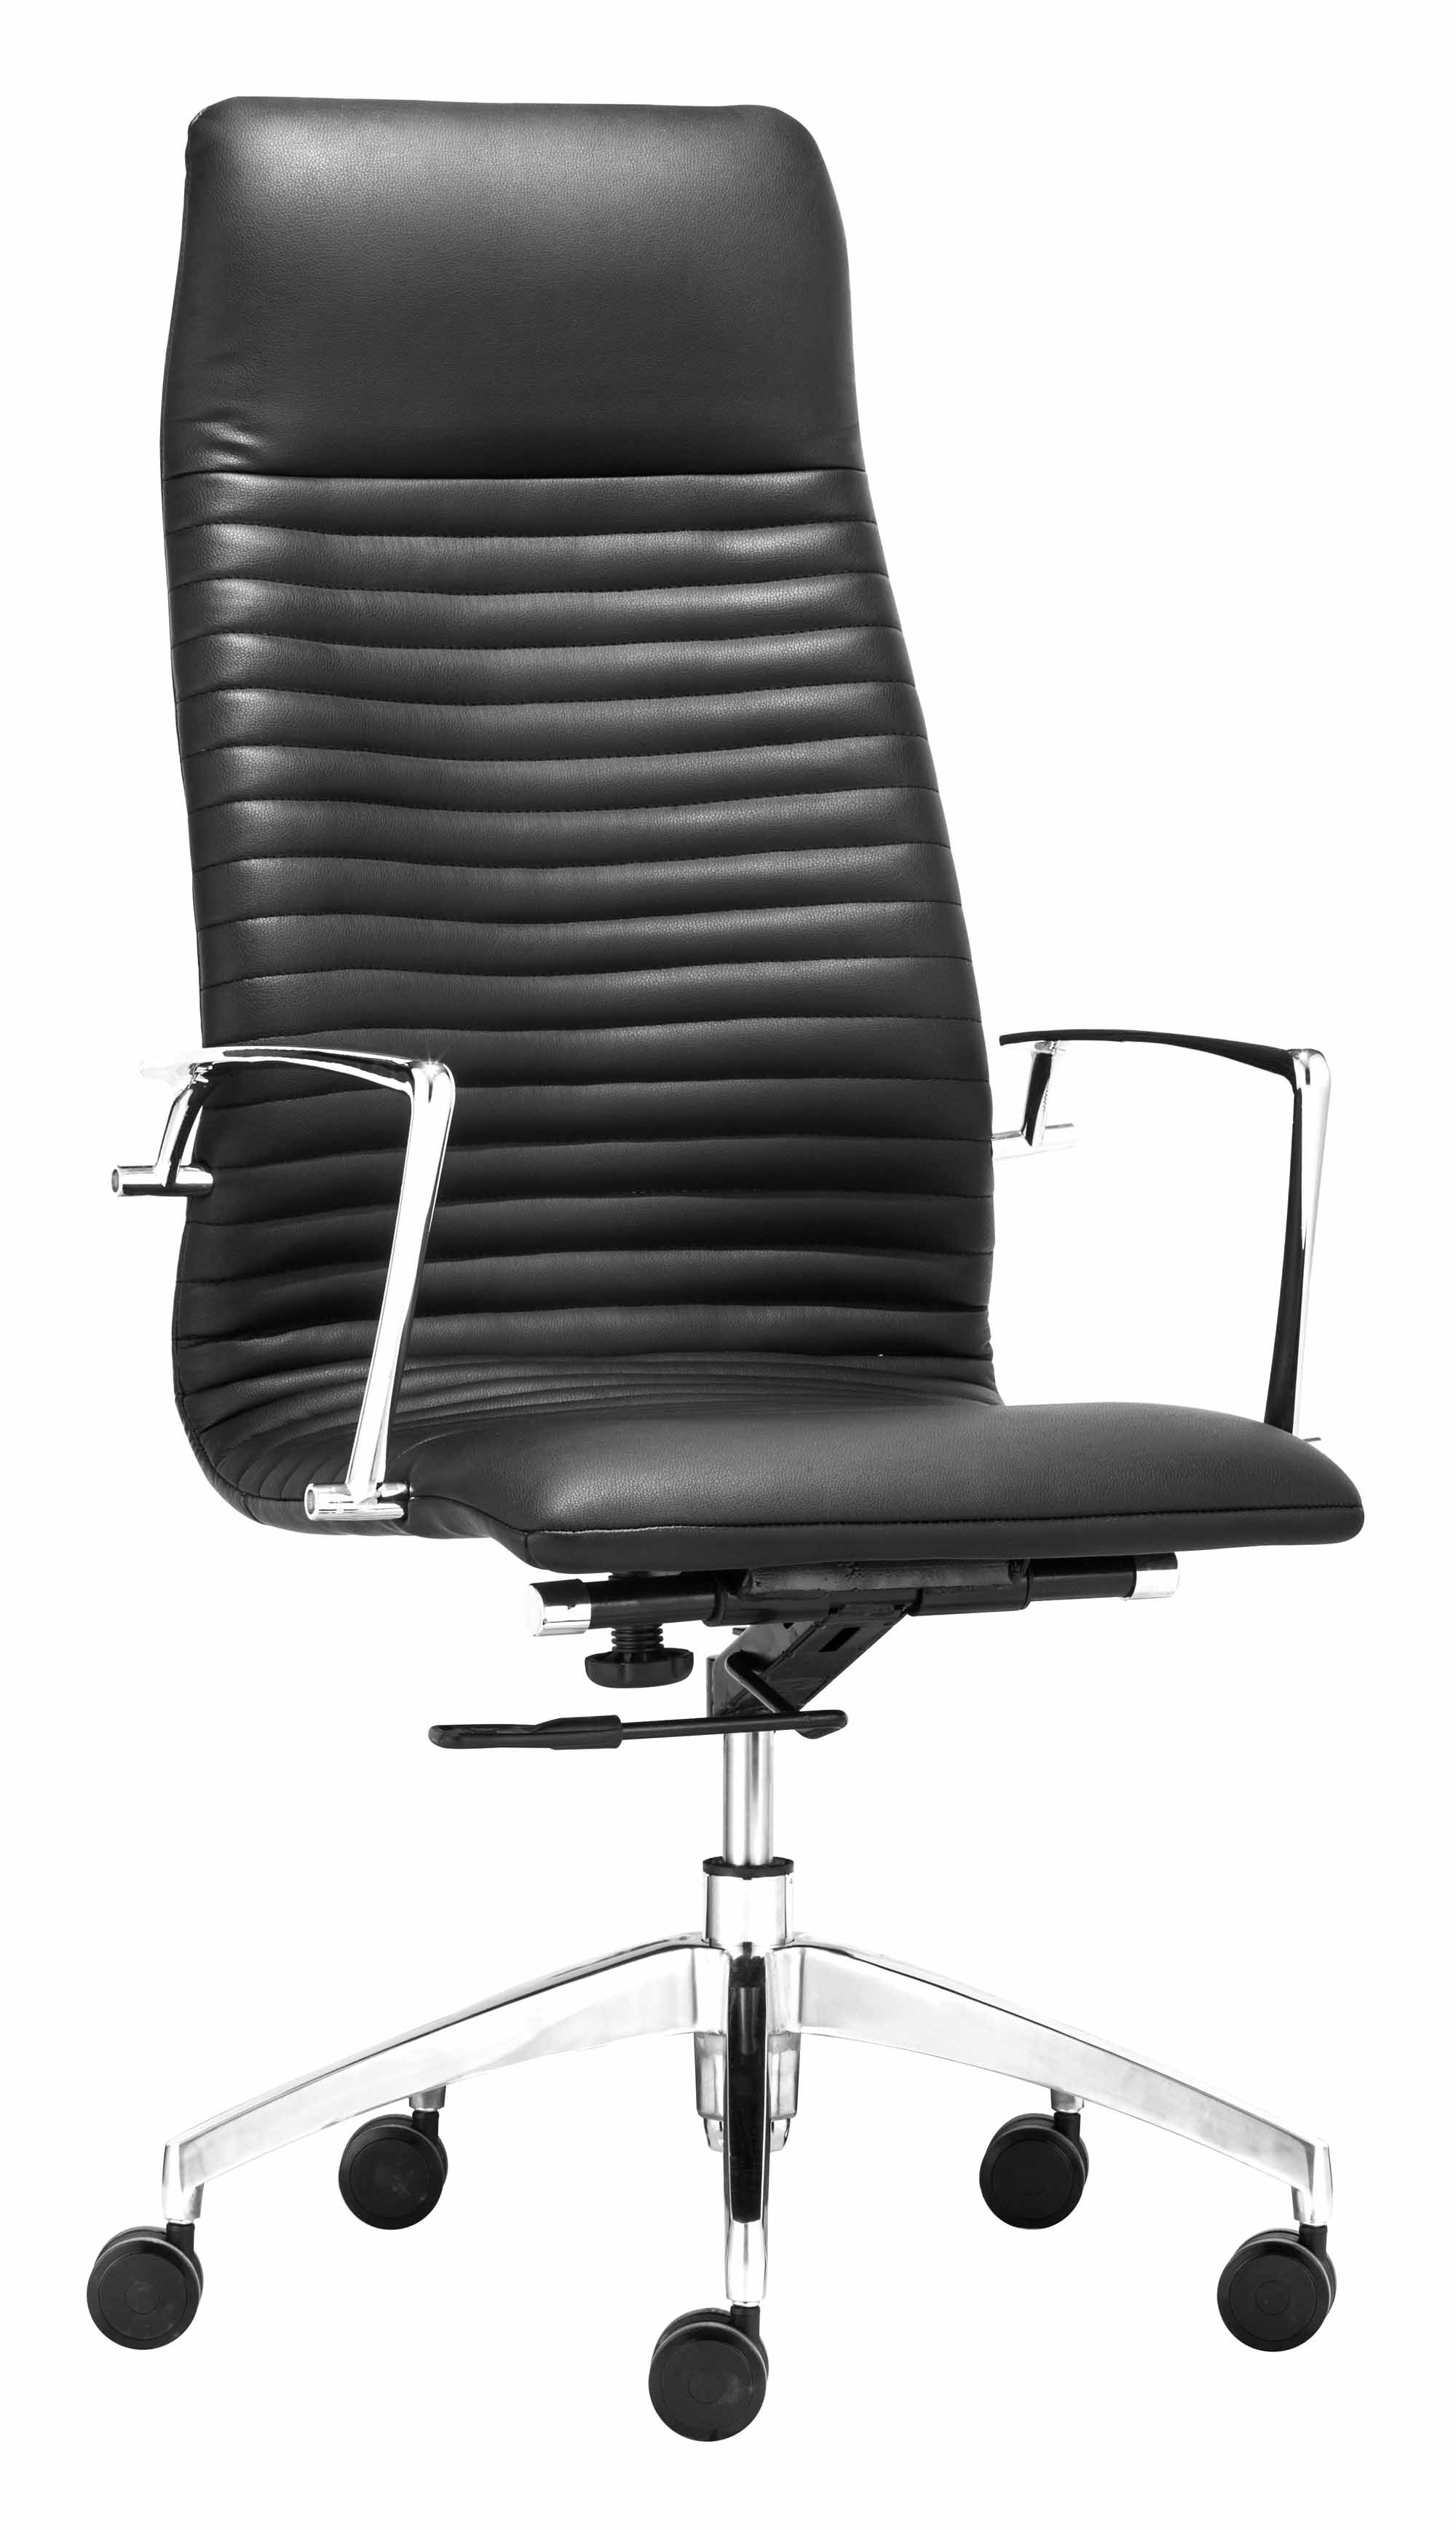 sc 1 st  Futonland & Lion High Back Office Chair Black by Zuo Modern